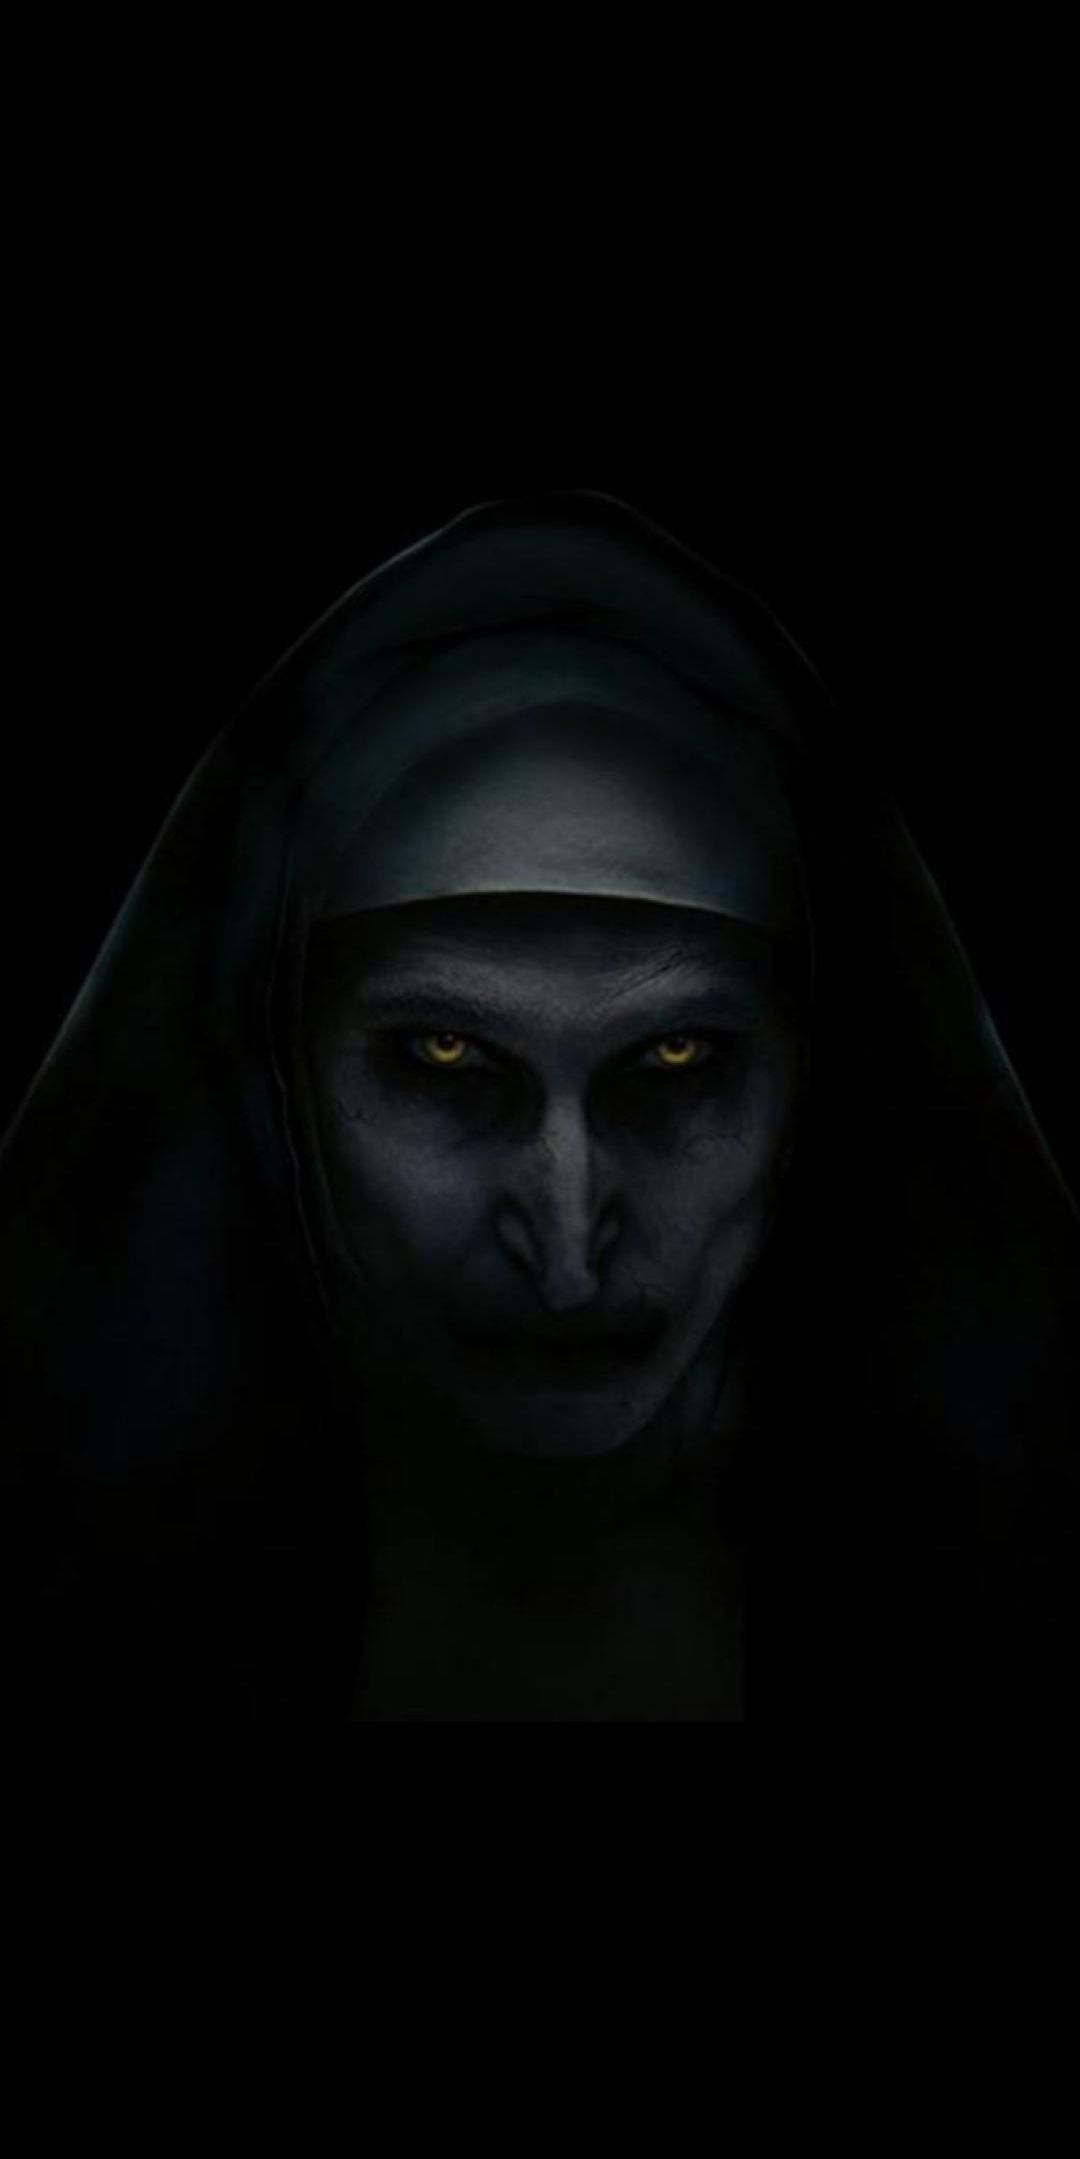 Nun Movie Horror Iphone Wallpaper In 2019 Halloween